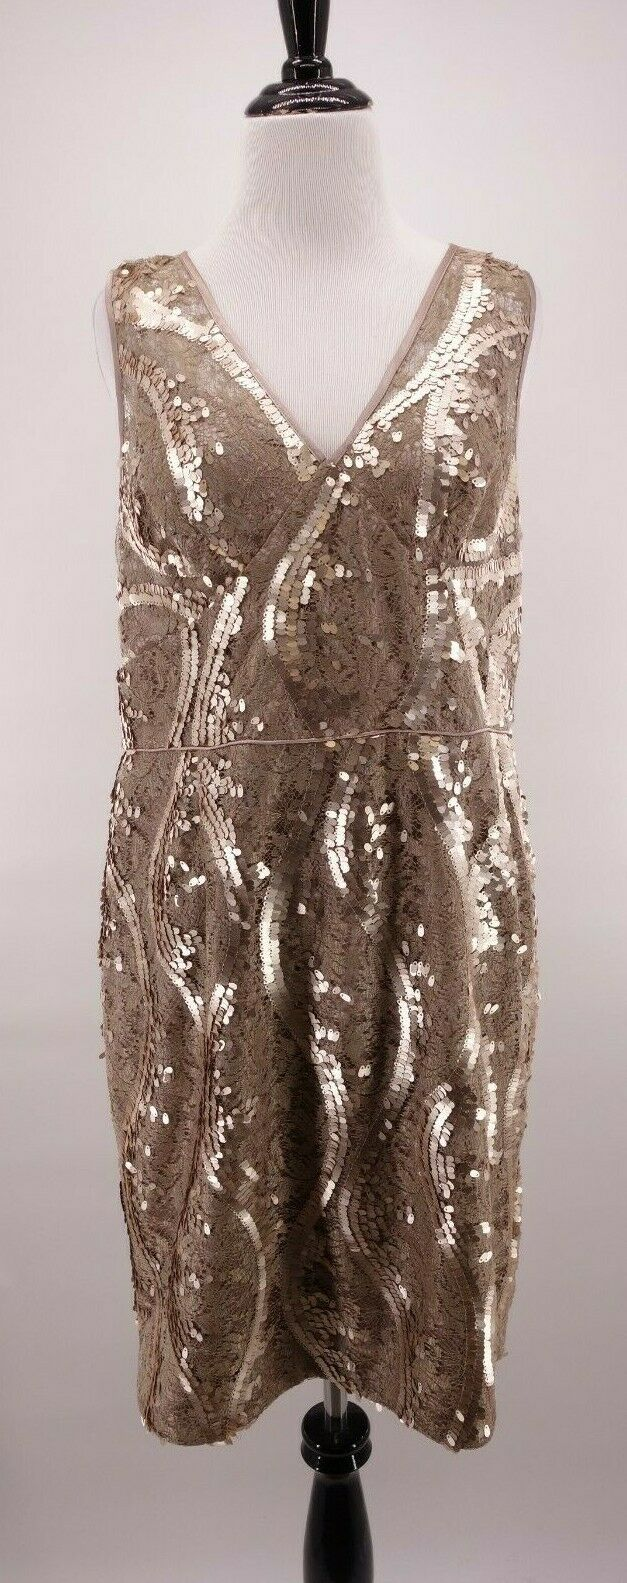 Adrianna Papell 14 Victorian Lace Gold Sequin Formal Party Sheath Dress Gown